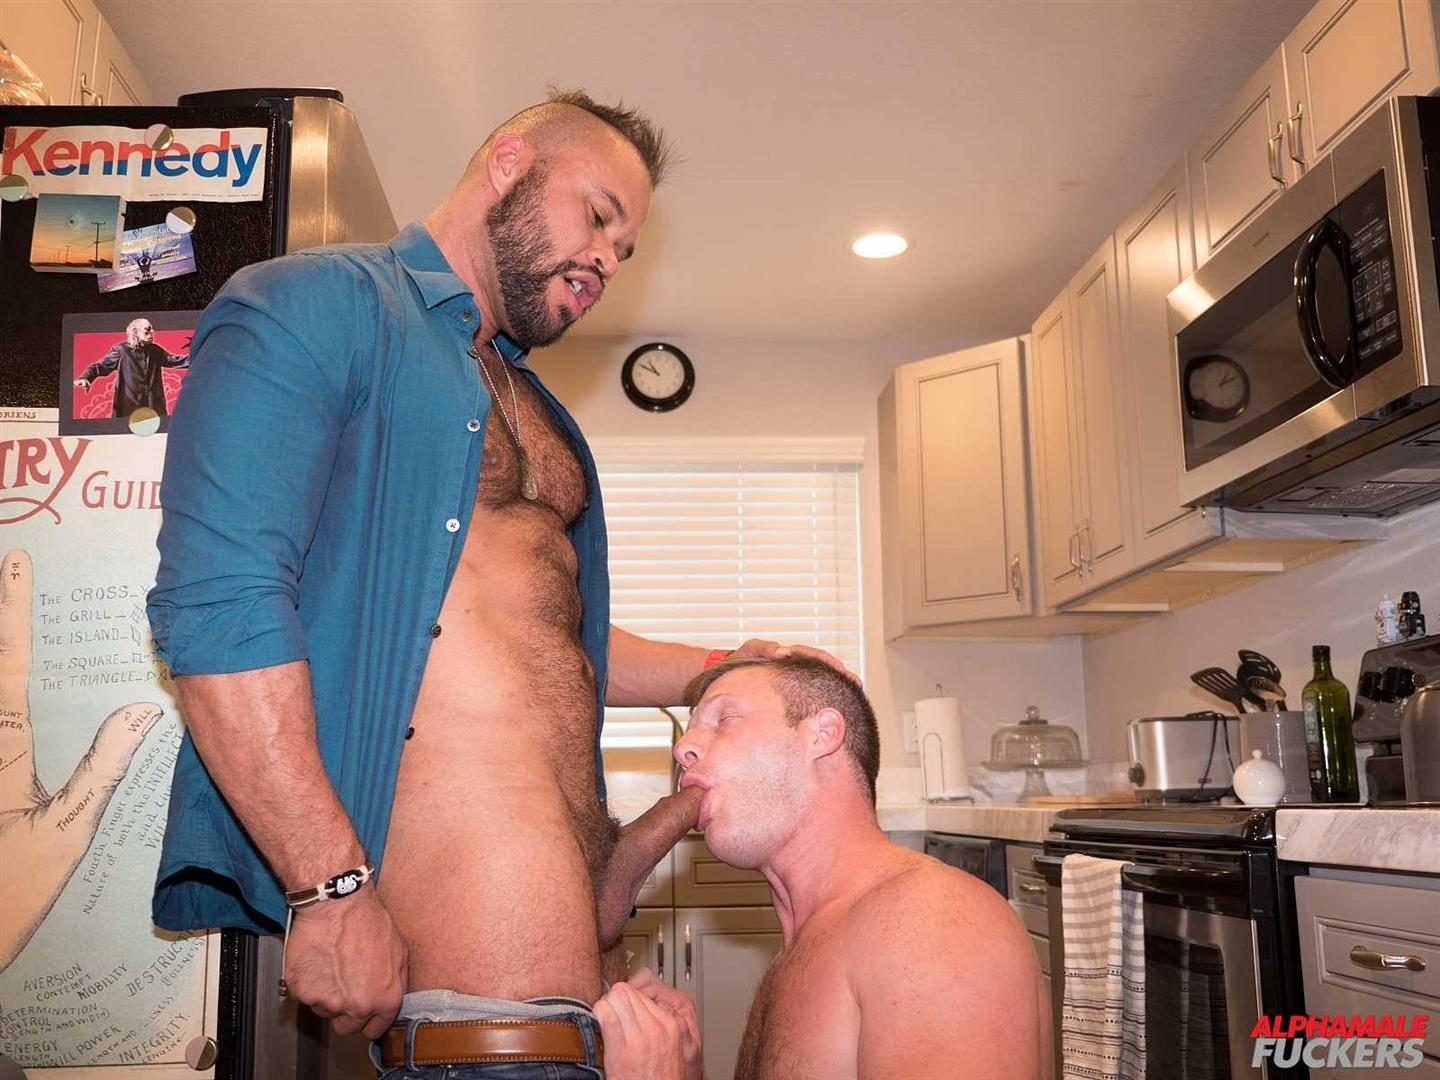 Alpha-Male-Fuckers-Brian-Bonds-and-Damien-Kilauea-Bareback-Gay-Sex-12 Brian Bonds Getting Fucked In His Kitchen By Damien Kilauea